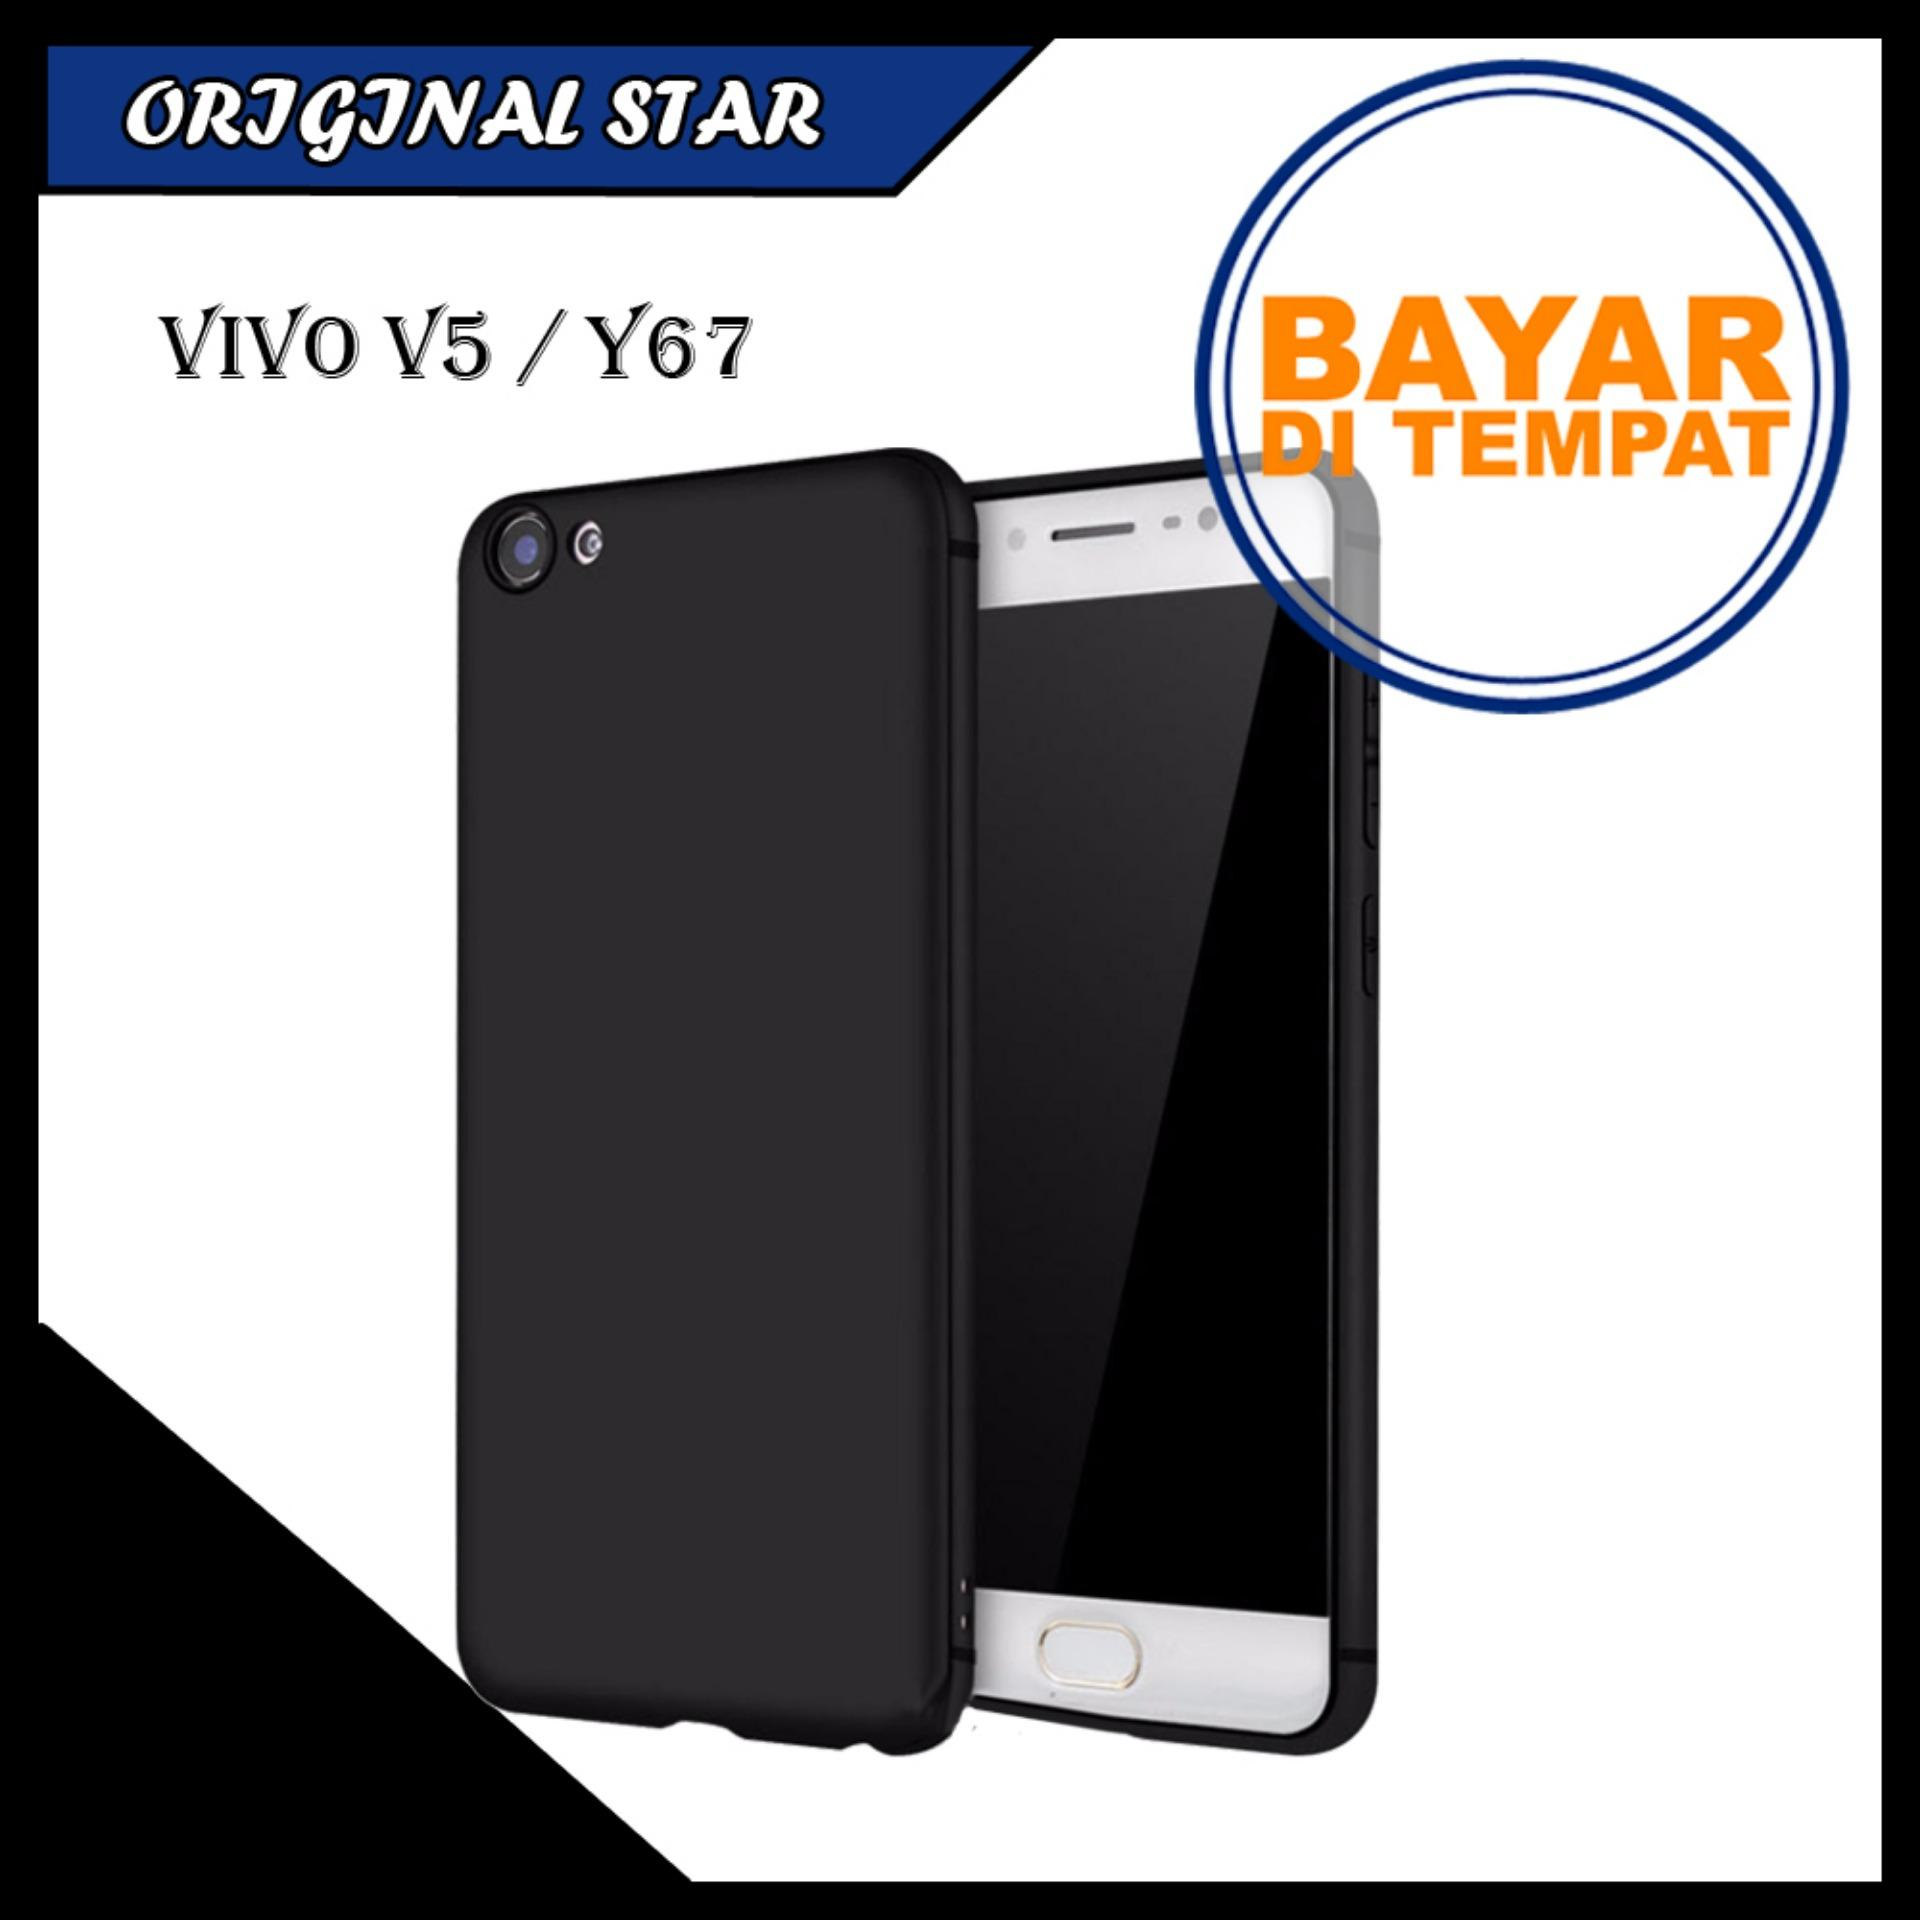 Case Anti Shock Anti Crack Elegant Softcase For Vivo V5 Y67 Clear Source · Origianal Star